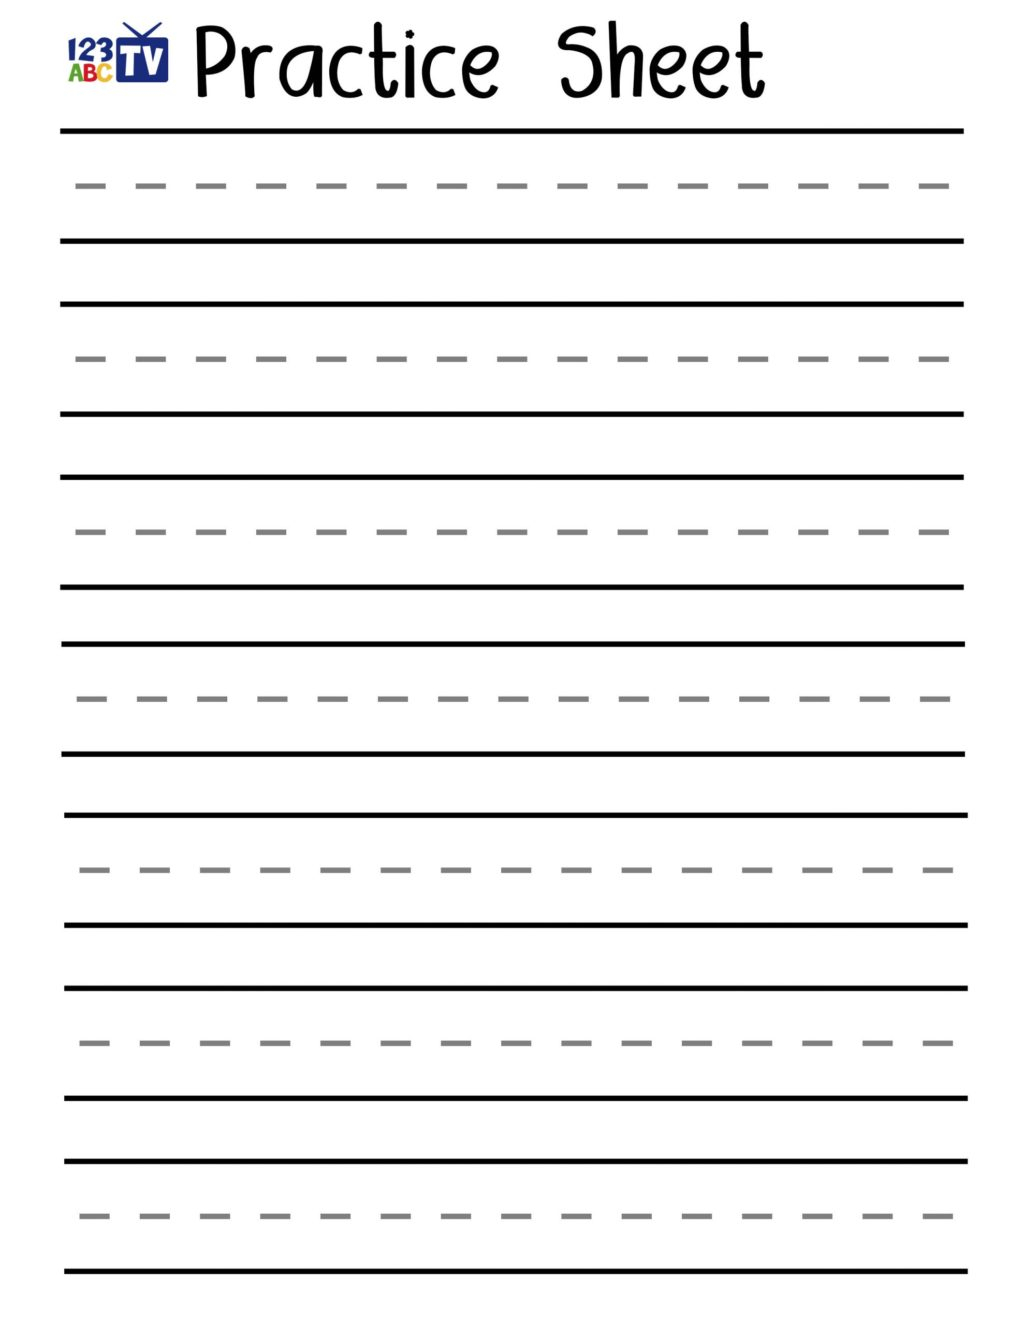 Worksheet ~ Blank Pageactice Handwriting Letter Downloads Tv for Name Tracing Worksheet With Blank Lines